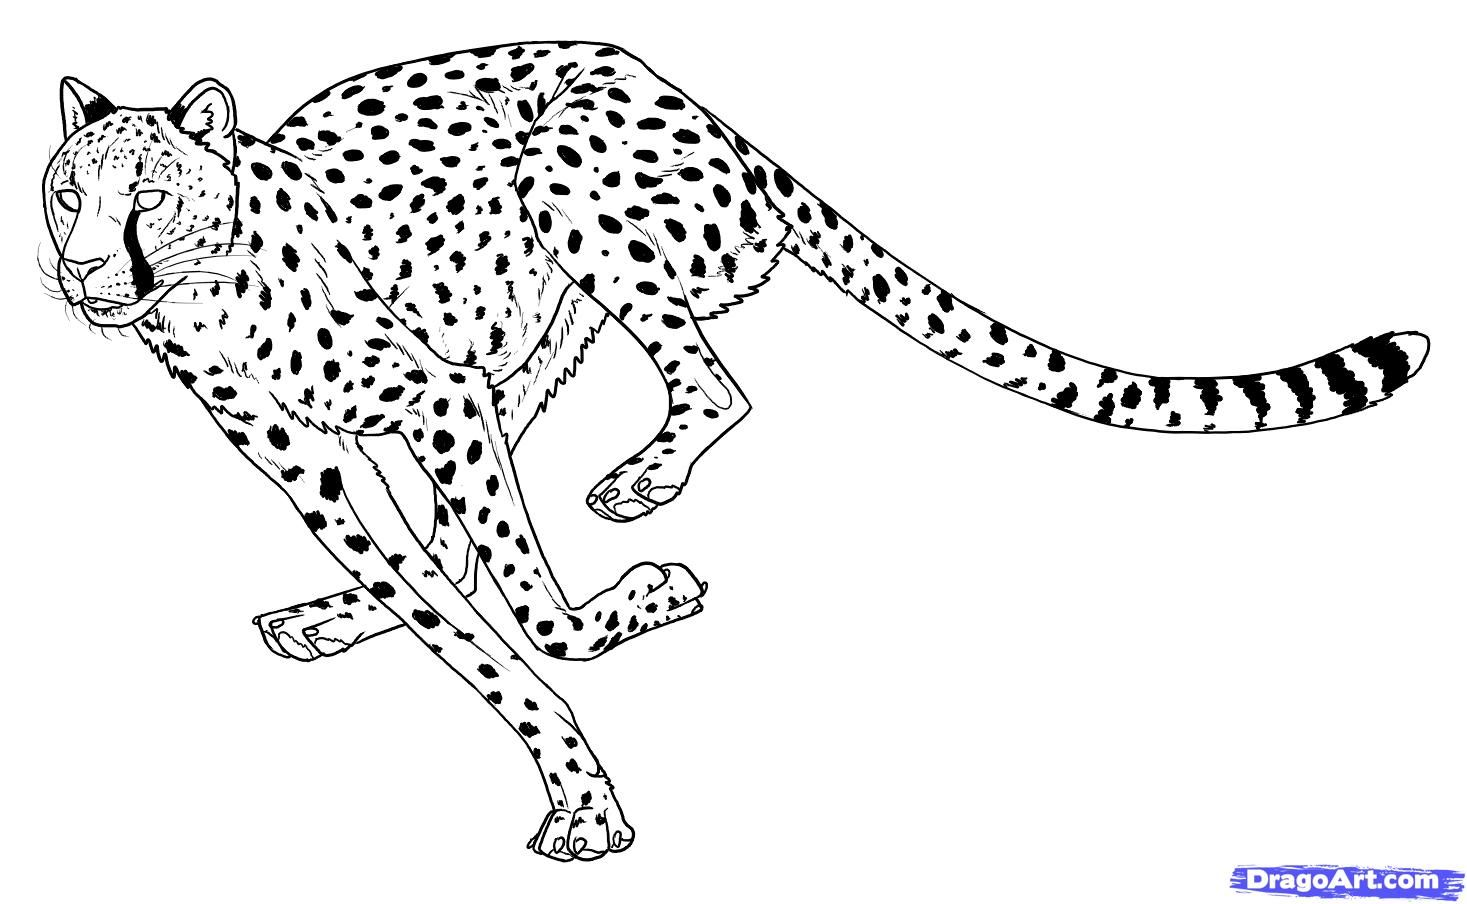 how to draw a cheetah step by step slowly draw a cheetah cheetah drawing big cats art animal by step how slowly draw a to cheetah step